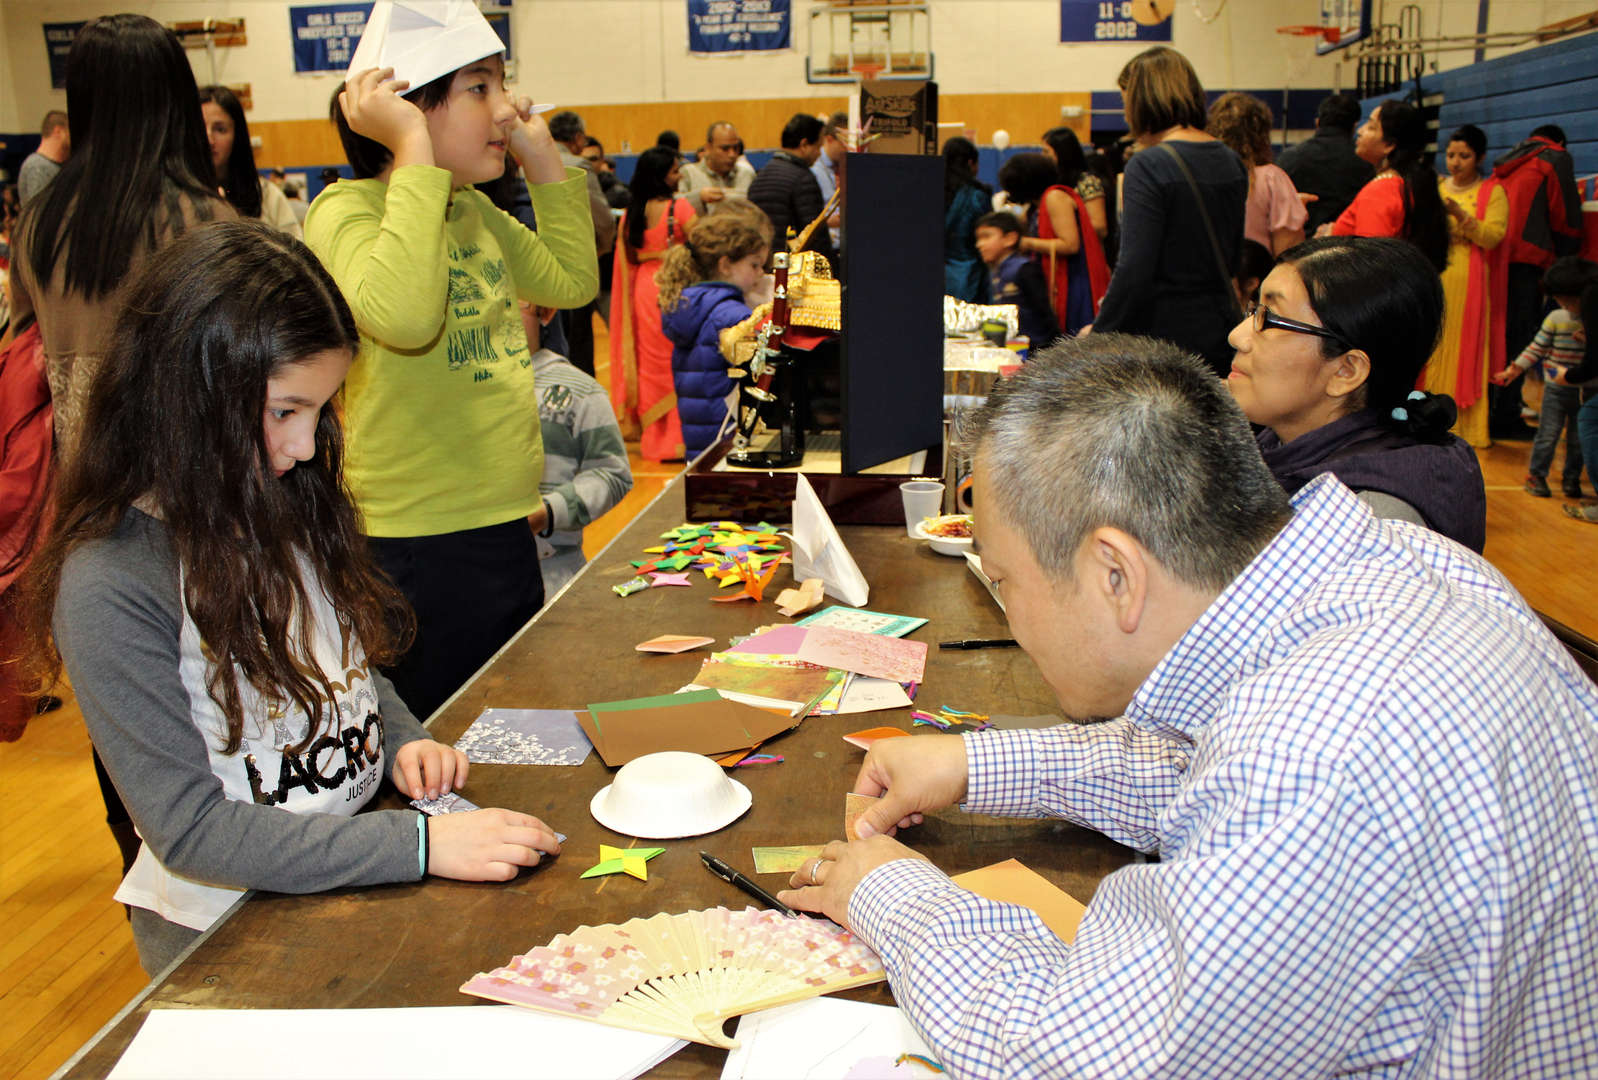 A grandparent teaches a student origami during One World Evening.